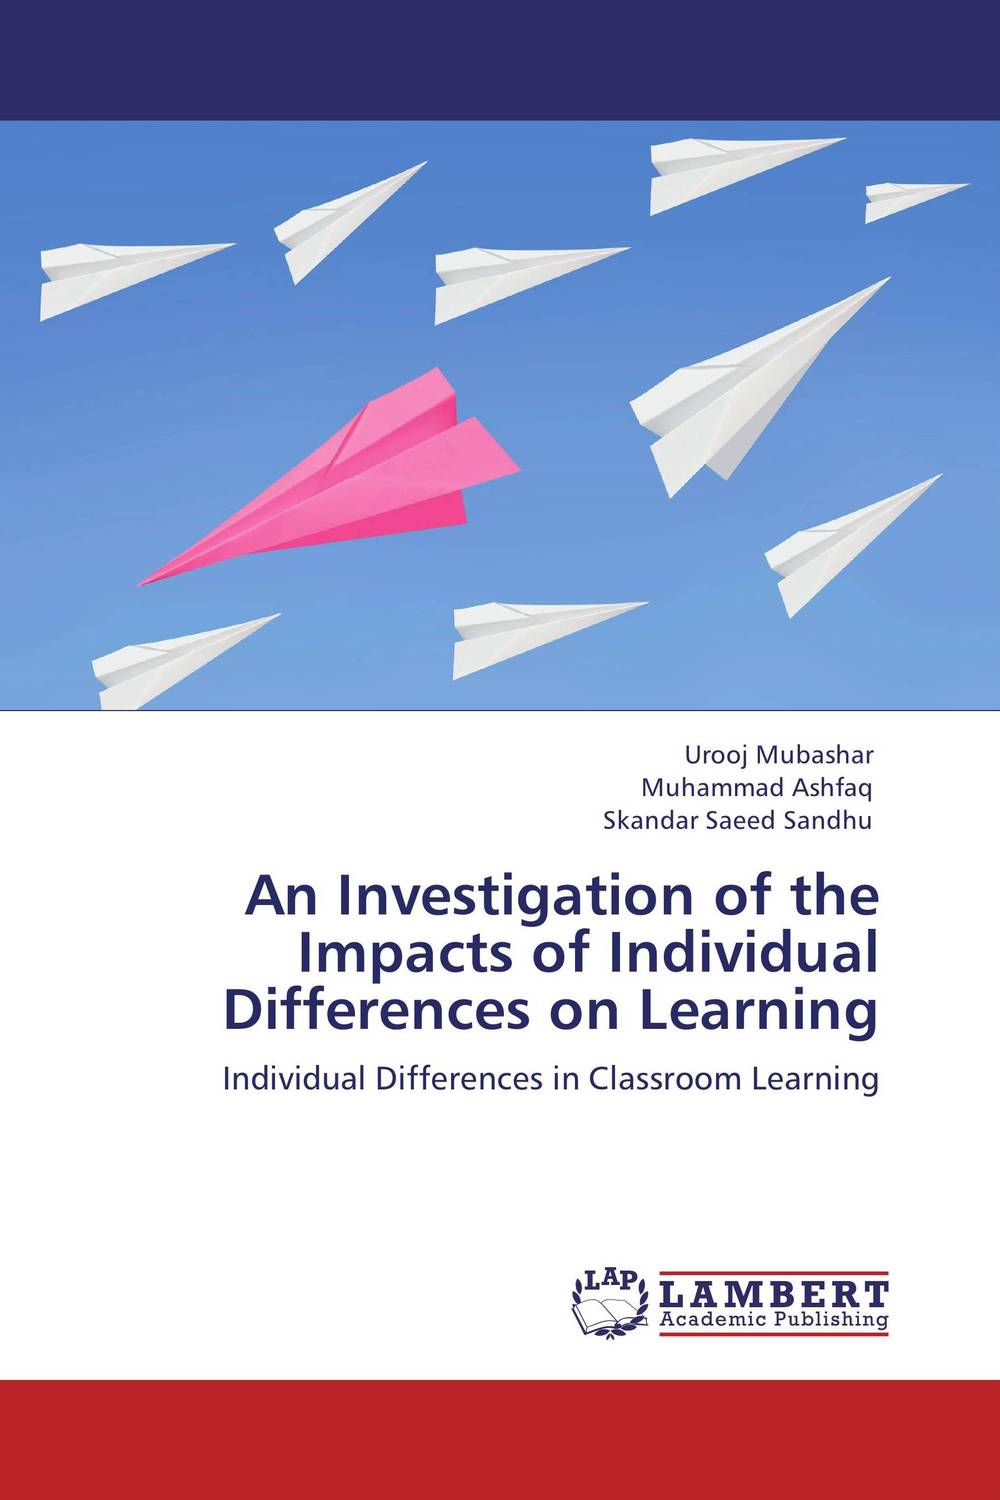 An Investigation of the Impacts of Individual Differences on Learning graded chinese reader 2000 words selected abridged chinese contemporary short stories w mp3 bilingual book